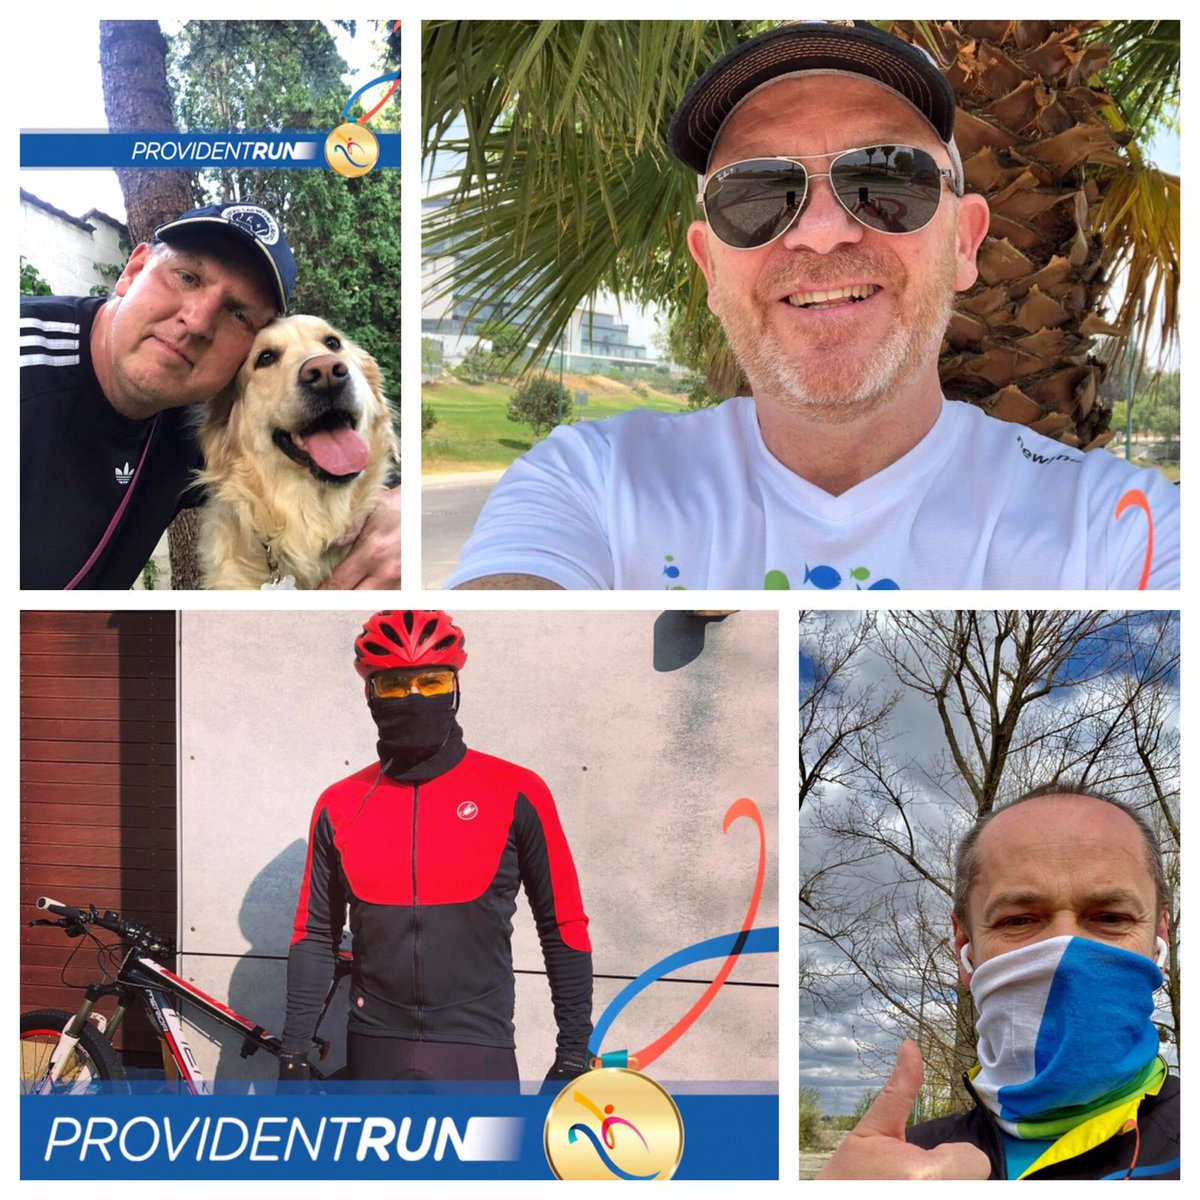 It's been an amazing day at IPF thanks to all our runners from across the globe who have made the virtual 2020 #ProvidentRUN held by @Provident_Pl an extraordinary and unforgettable experience! Well done and many thanks to all of you!Together we are stronger!👏 #IPFTogetherWeCare https://t.co/akXy0zwTpL